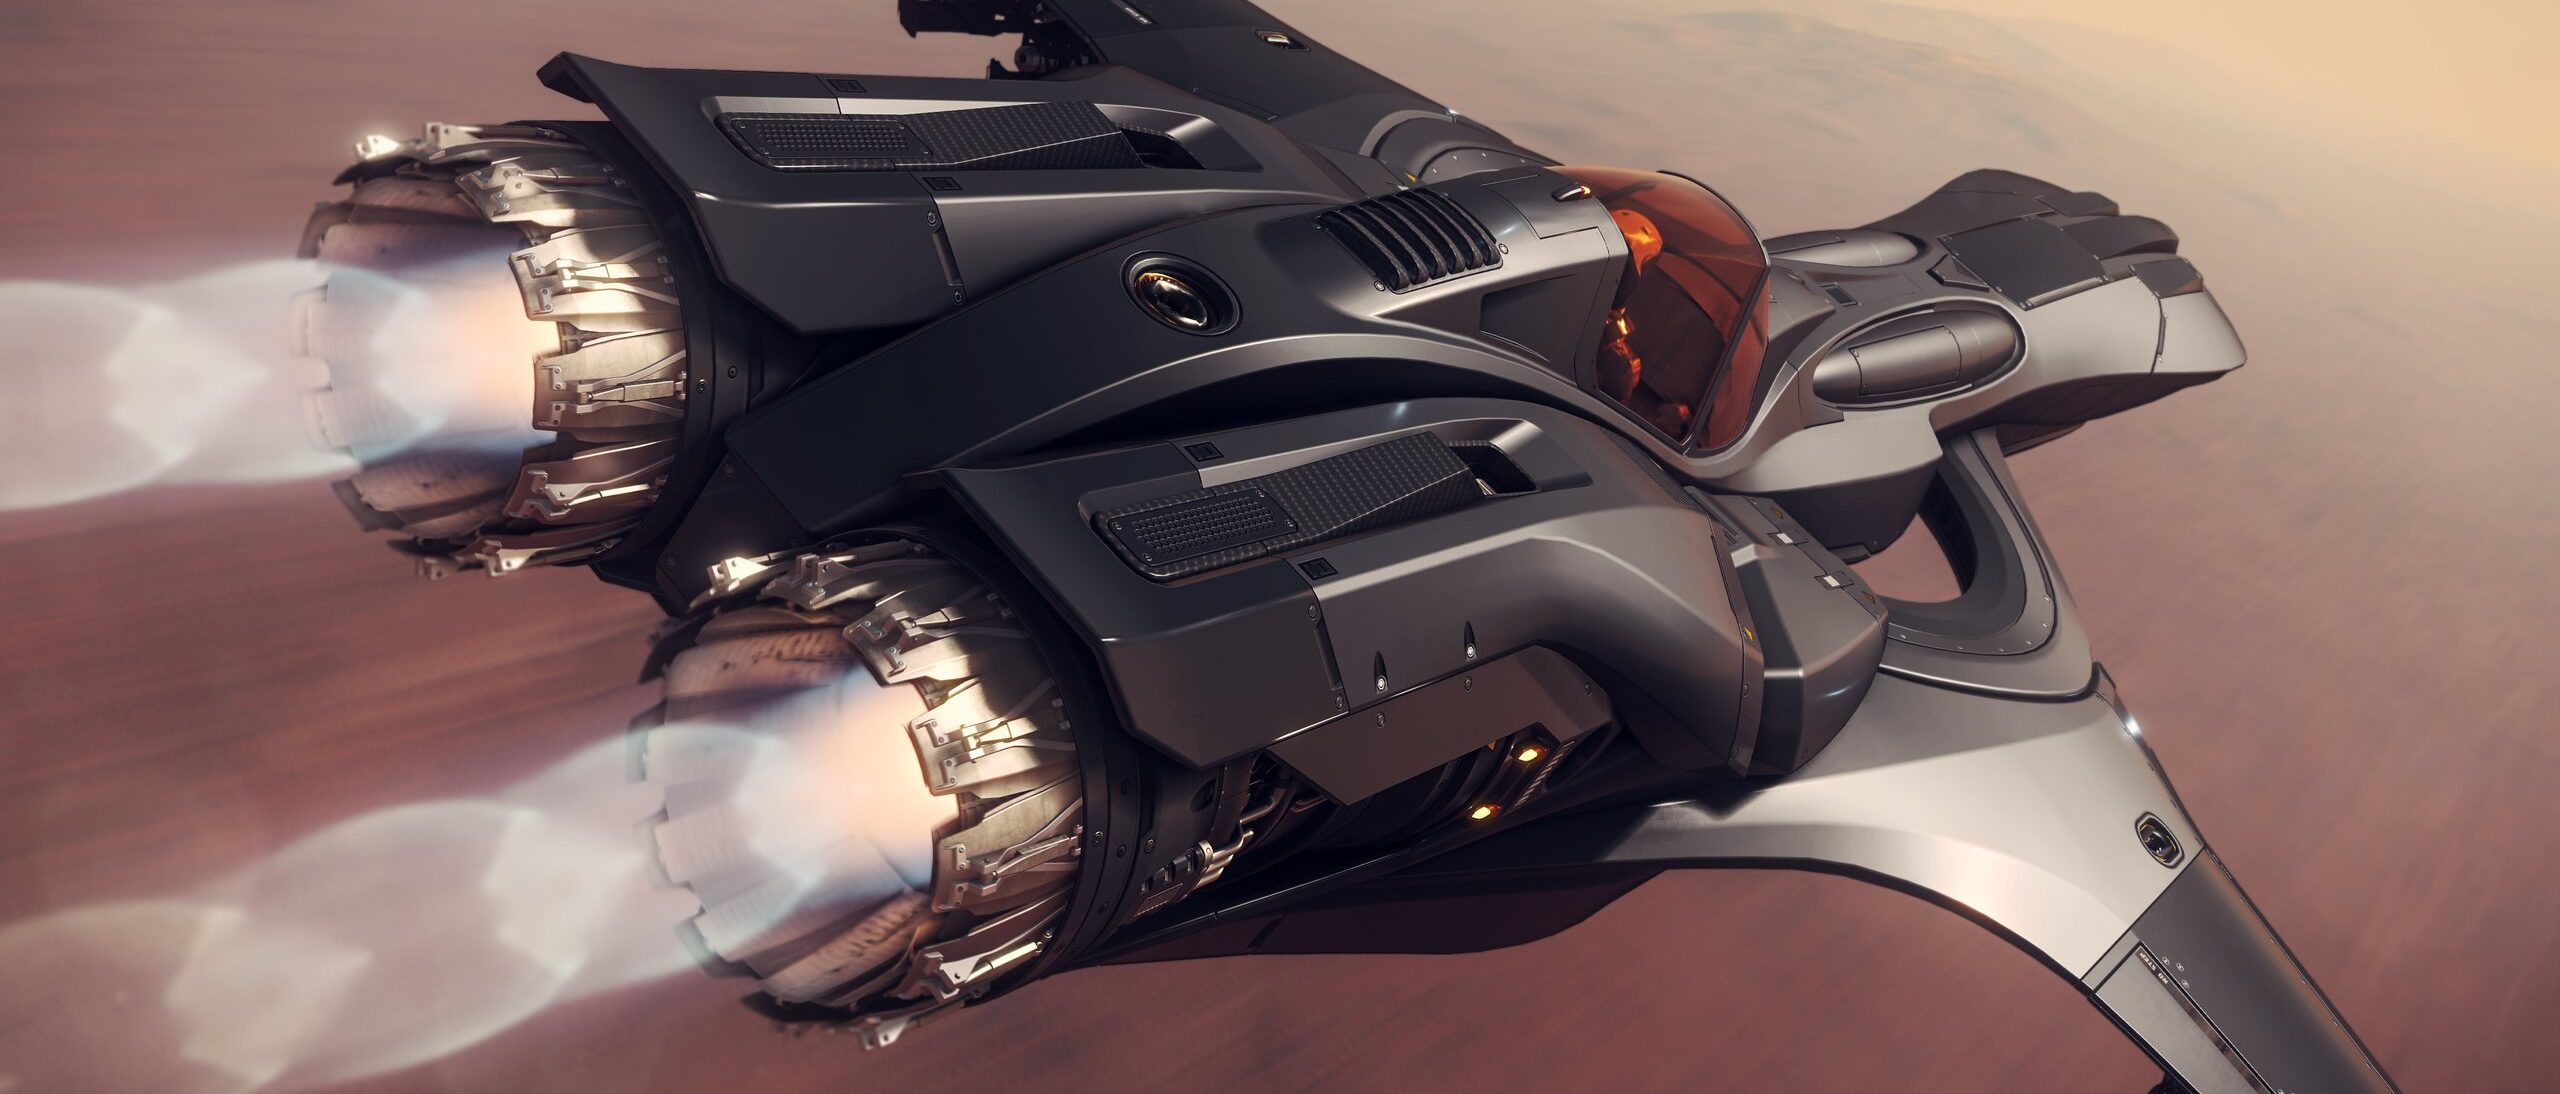 Read more about the article Hasgaha's Star Citizen Screenshot Contest: July 2021